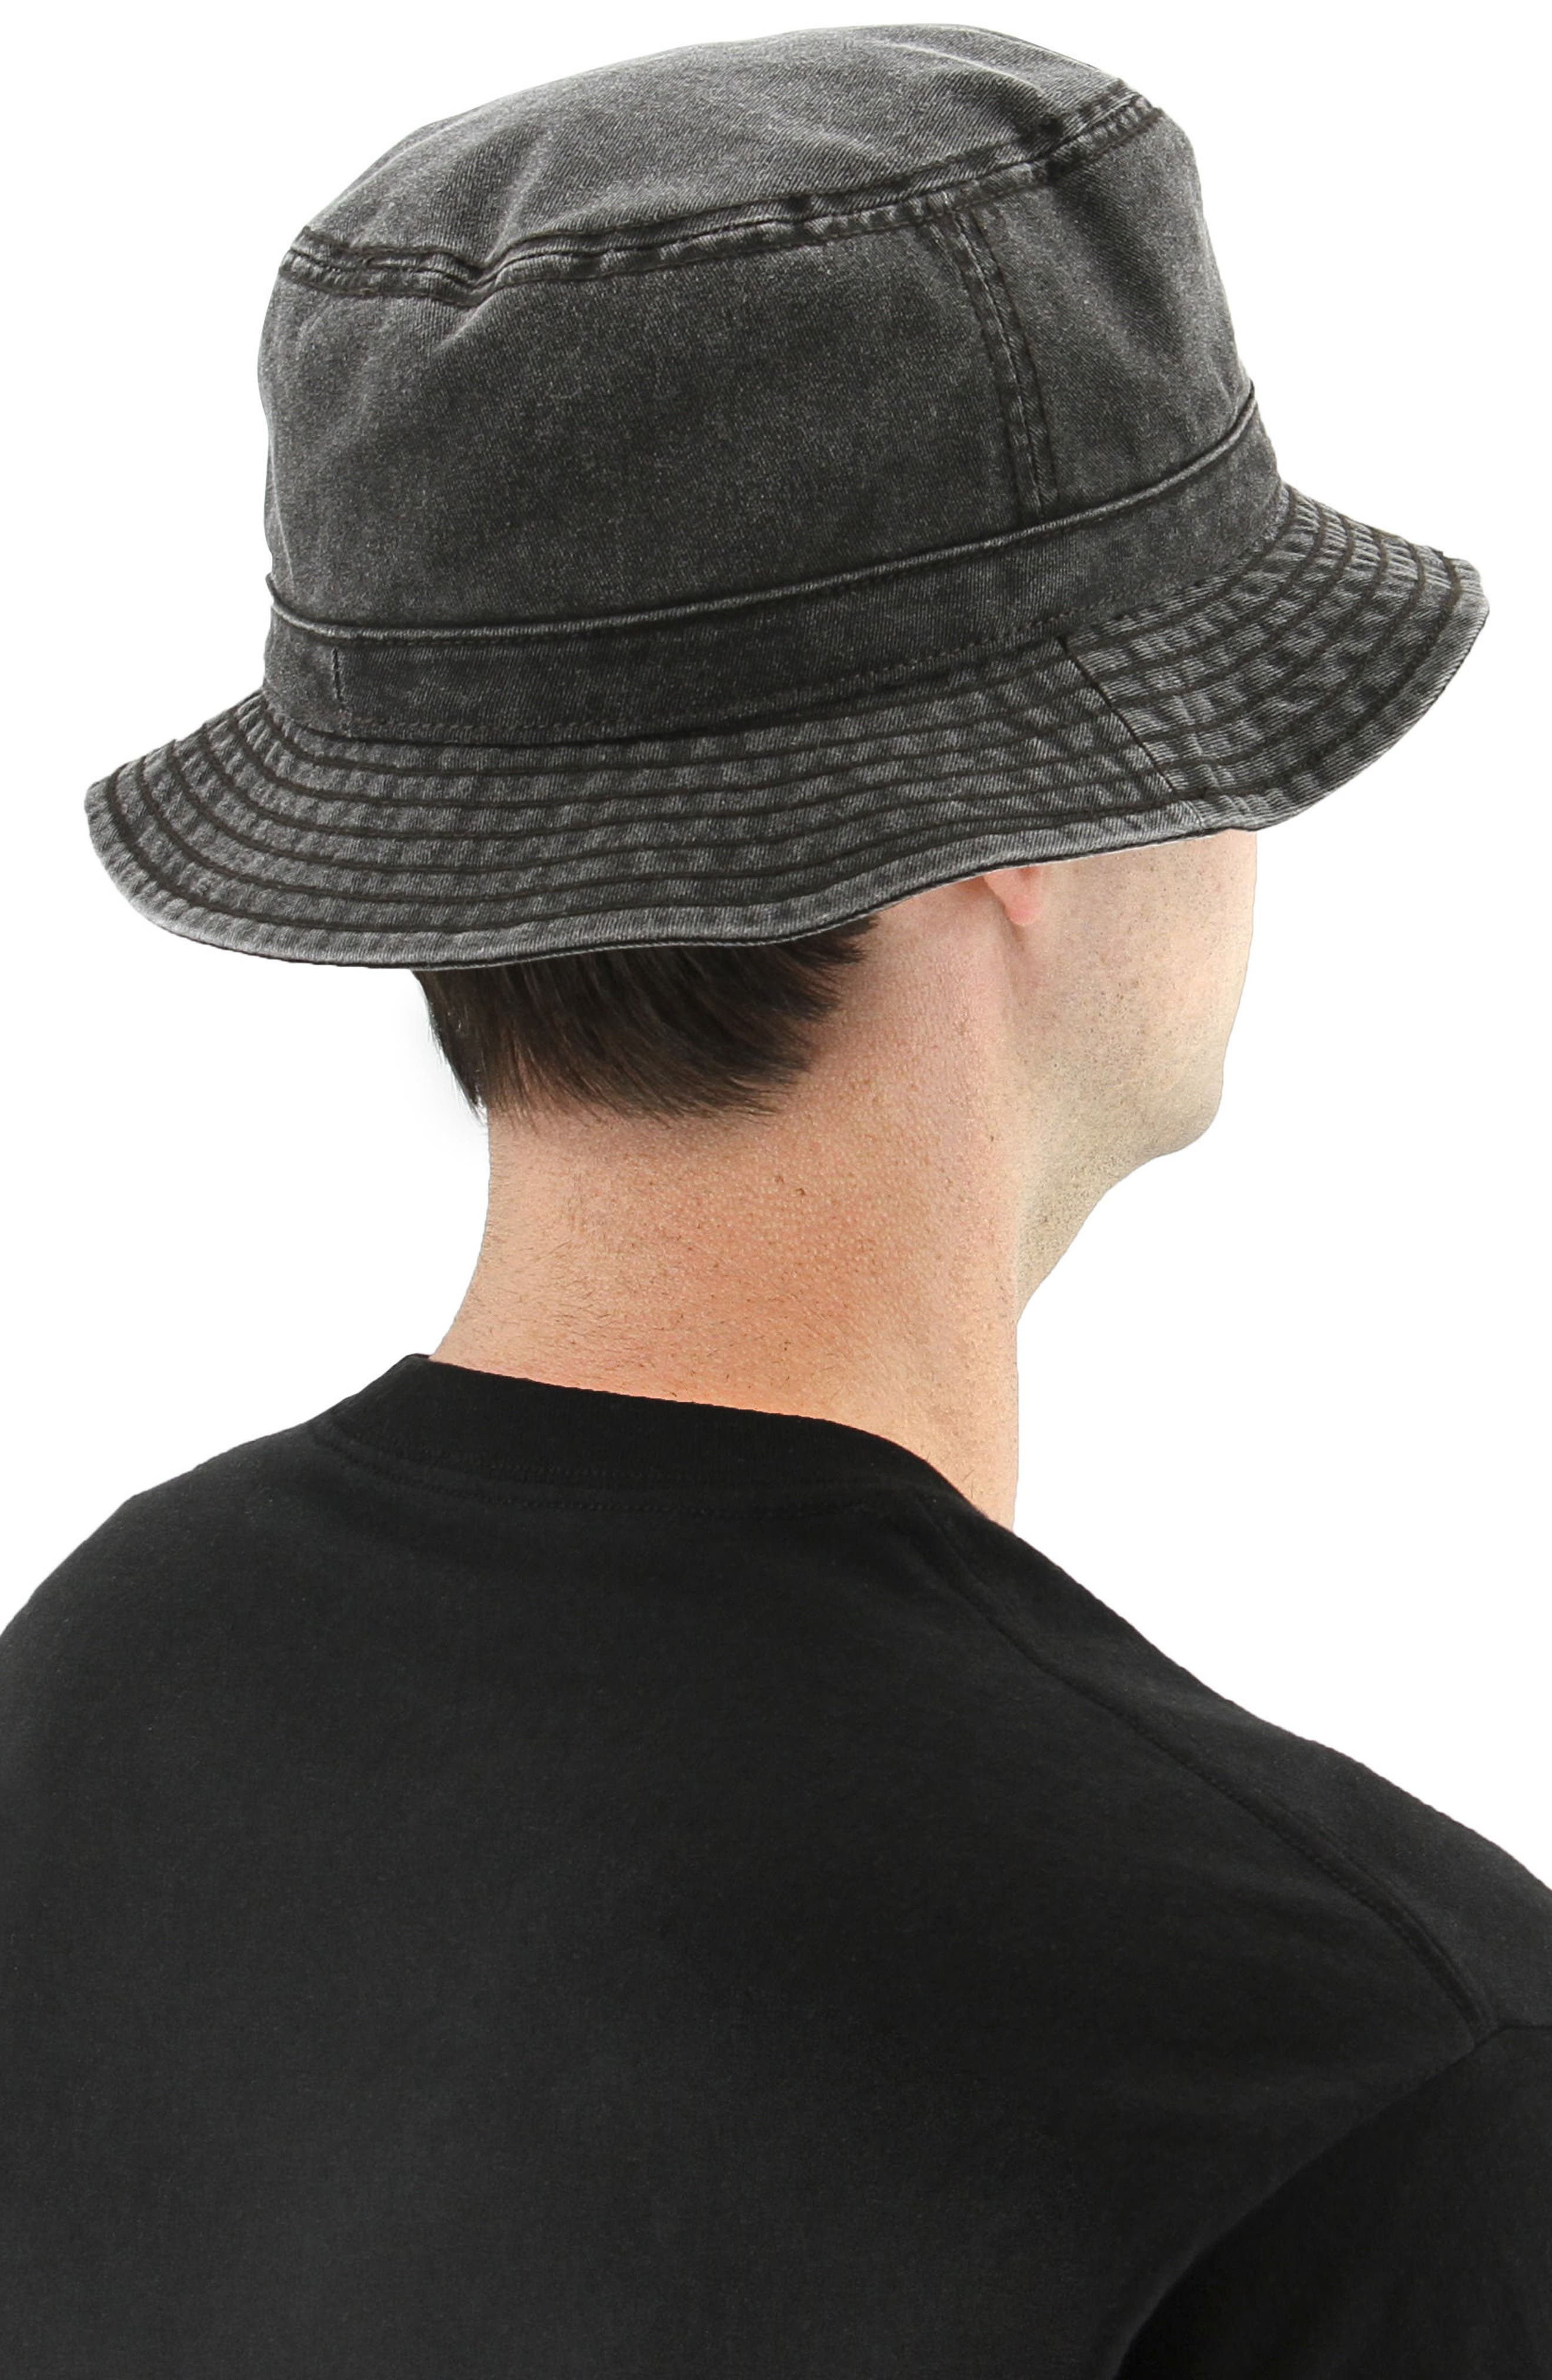 Washed Bucket Hat,                             Alternate thumbnail 4, color,                             001